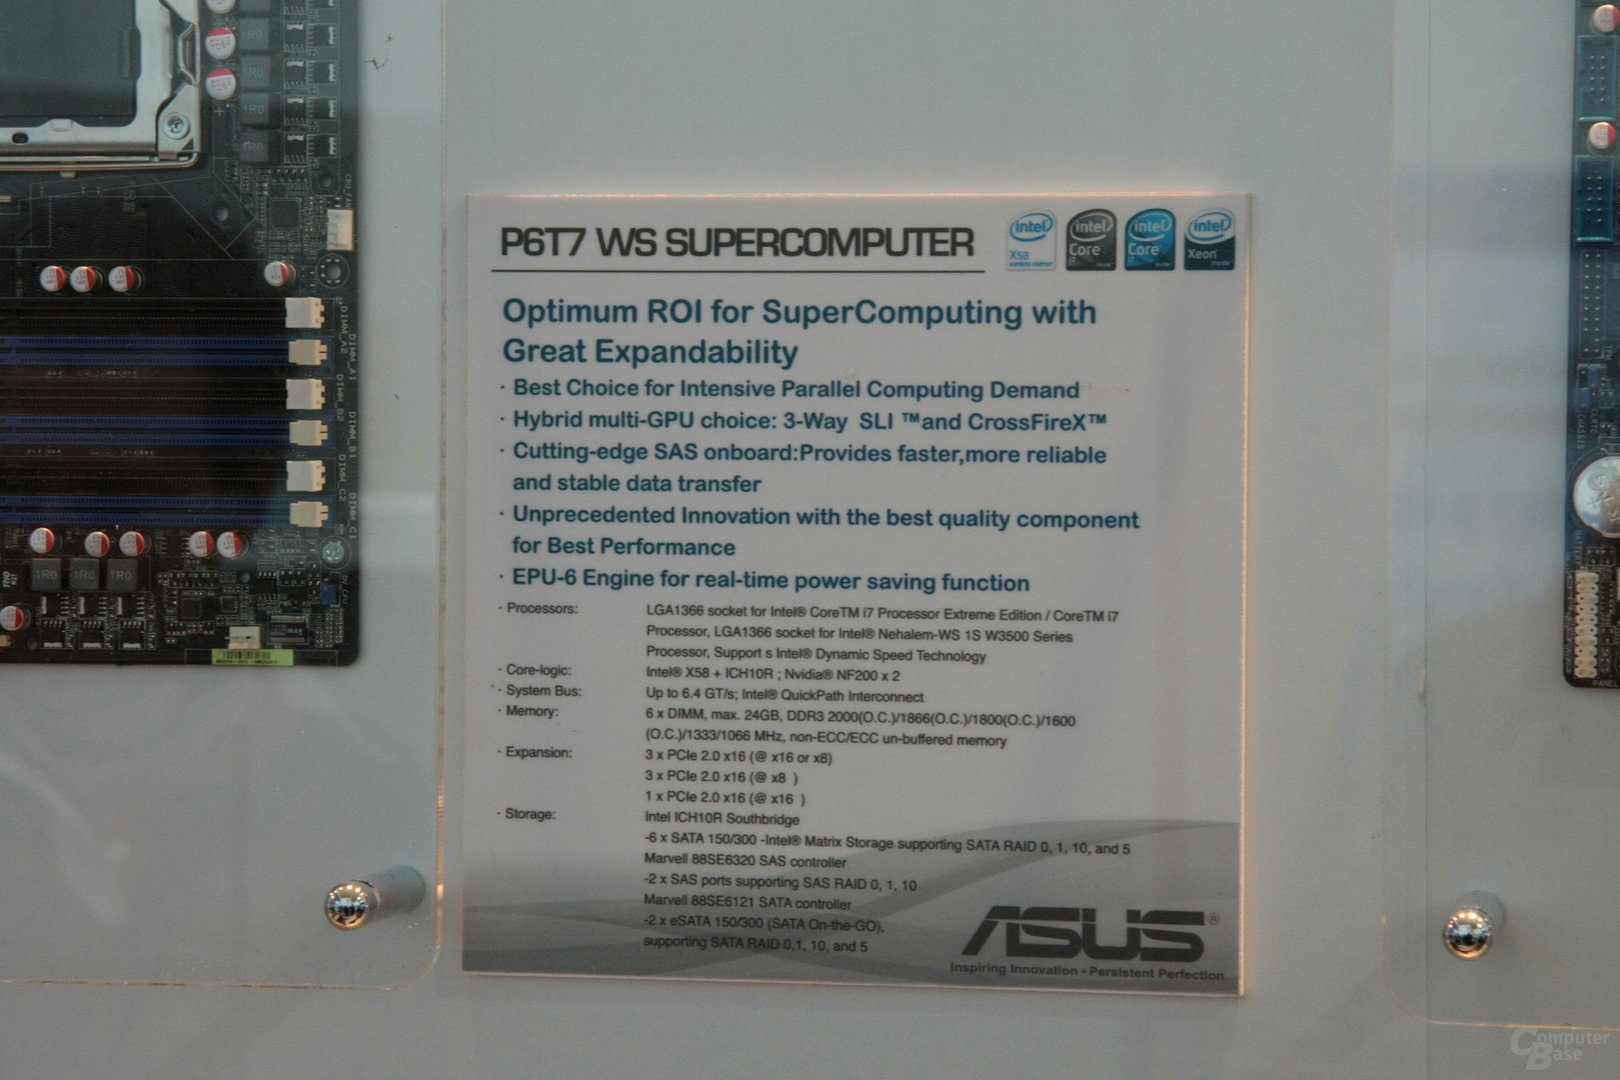 Asus P6T7 WS Supercomputer